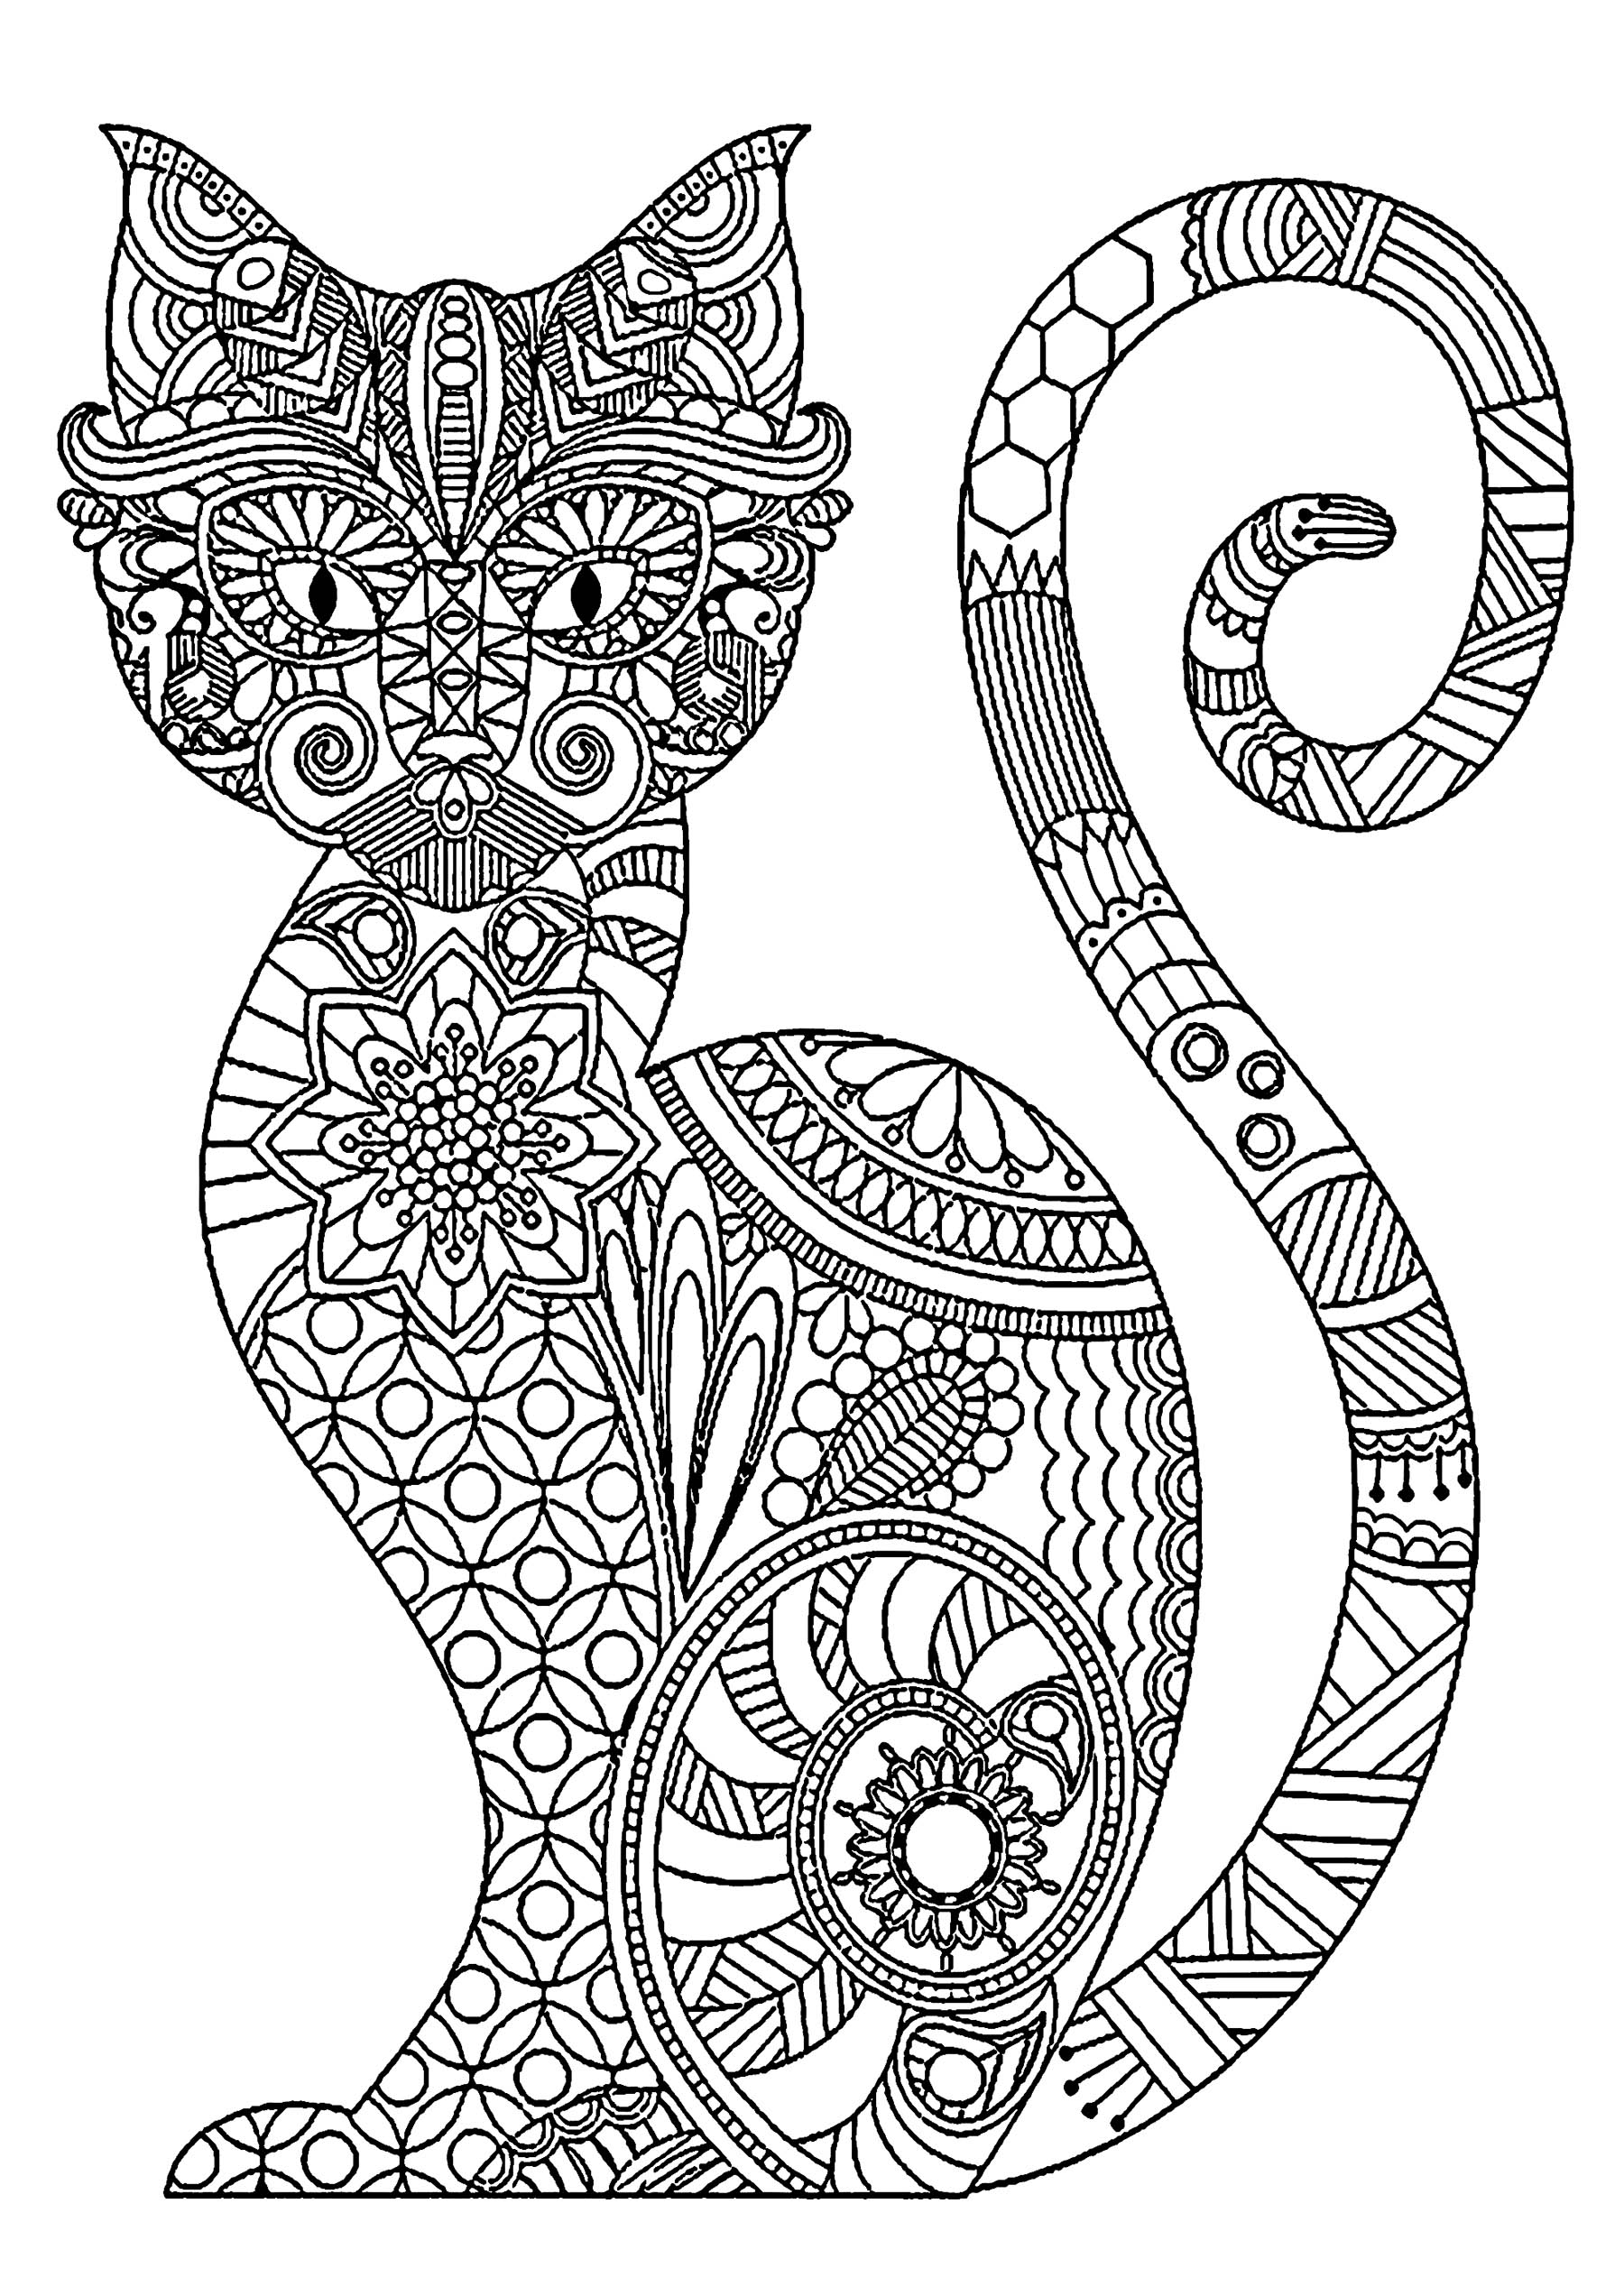 Cat coloring page to download : Cute cat with cool patterns